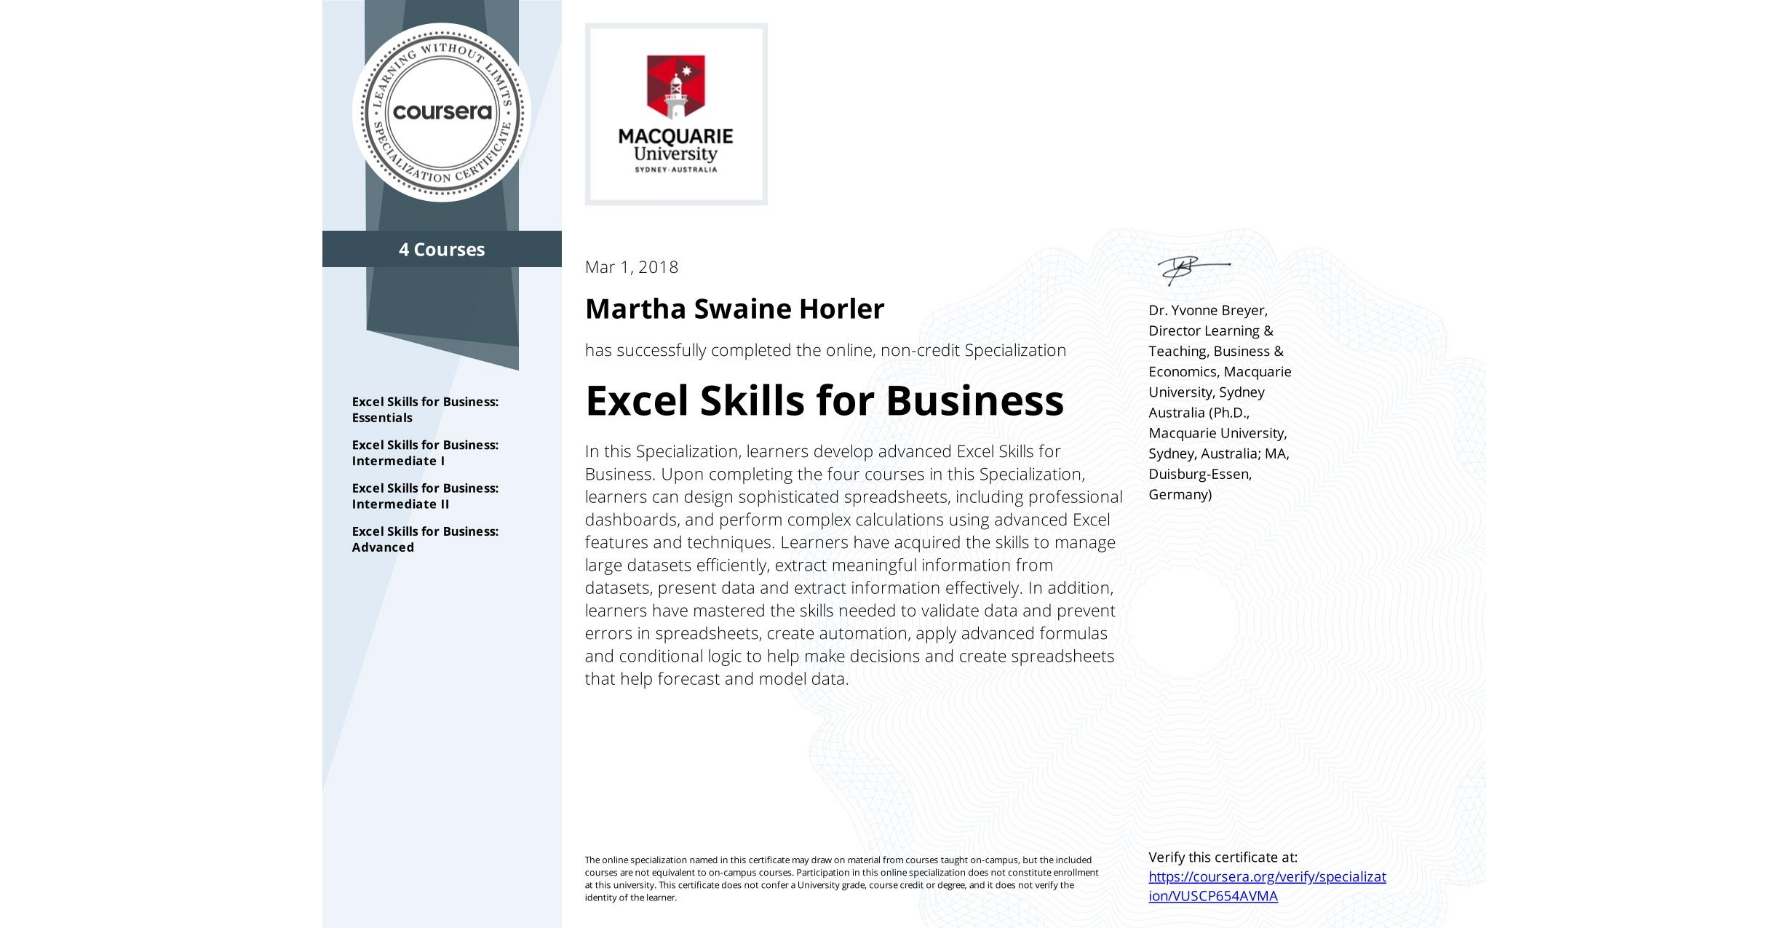 View certificate for Martha Swaine Horler, Excel Skills for Business, offered through Coursera. In this Specialization, learners develop advanced Excel Skills for Business.  Upon completing the four courses in this Specialization, learners can design sophisticated spreadsheets, including professional dashboards, and perform complex calculations using advanced Excel features and techniques. Learners have acquired the skills to manage large datasets efficiently, extract meaningful information from datasets, present data and extract information effectively. In addition, learners have mastered the skills needed to validate data and prevent errors in spreadsheets, create automation, apply advanced formulas and conditional logic to help make decisions and create spreadsheets that help forecast and model data.